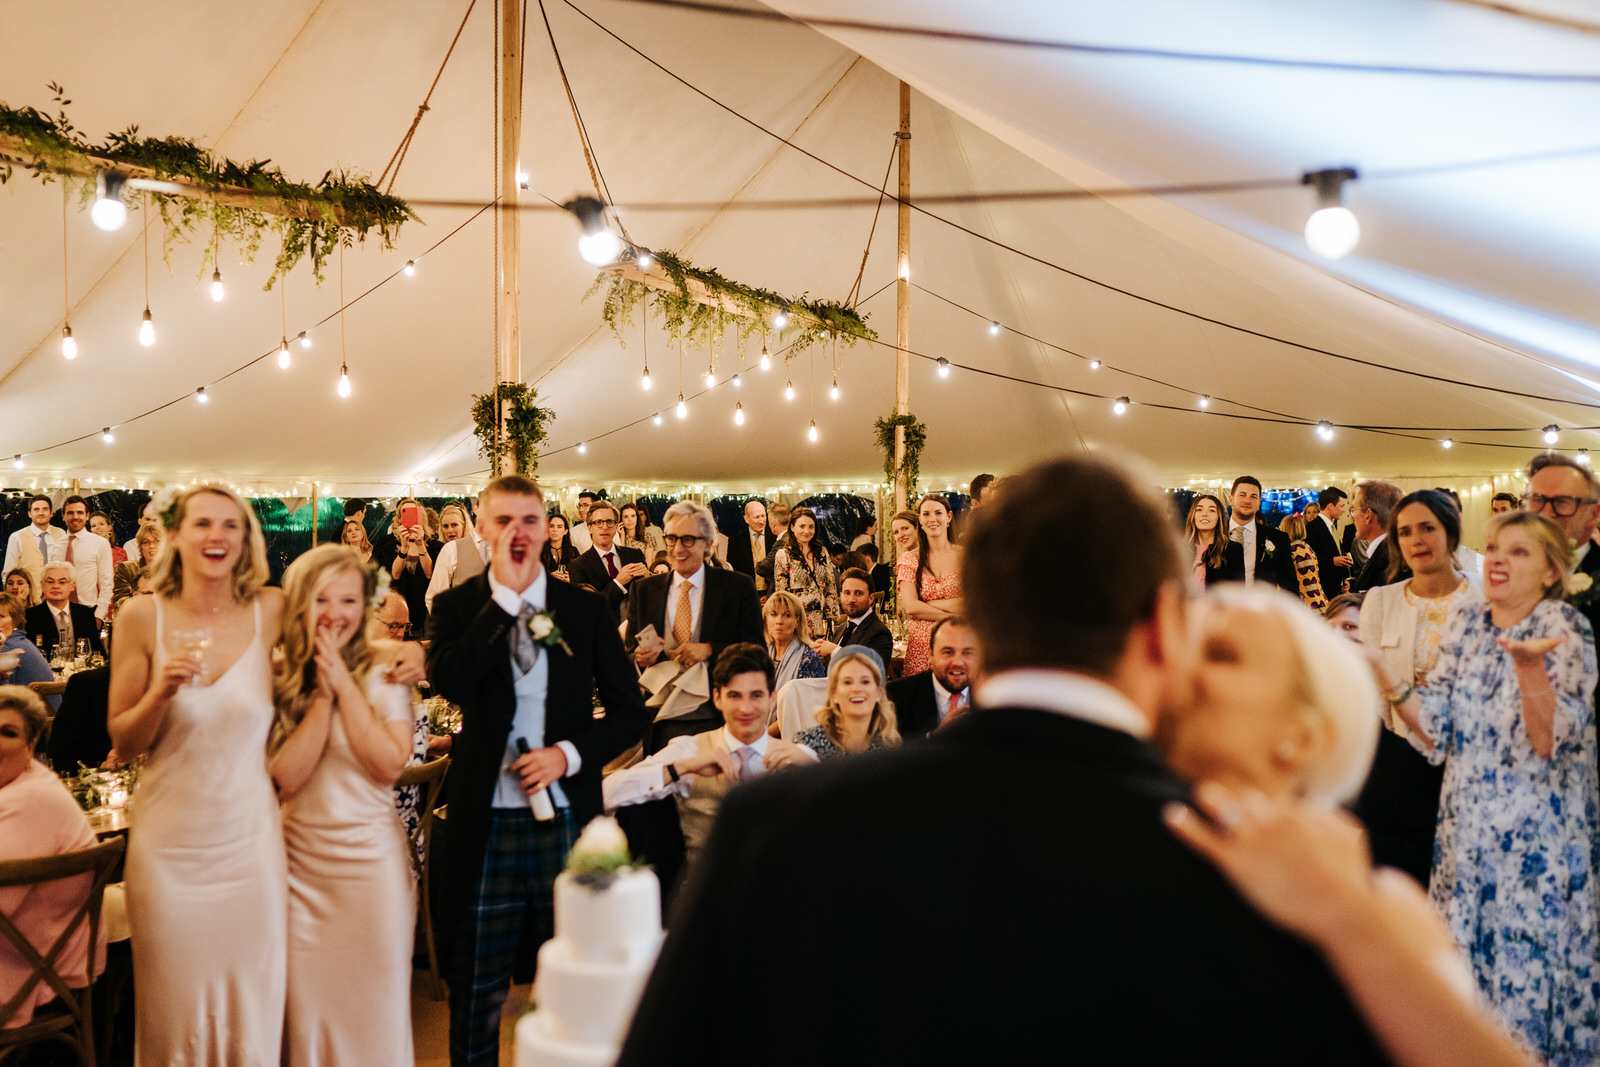 Wide photograph of bride and groom kissing and guests cheering after cutting the wedding cake